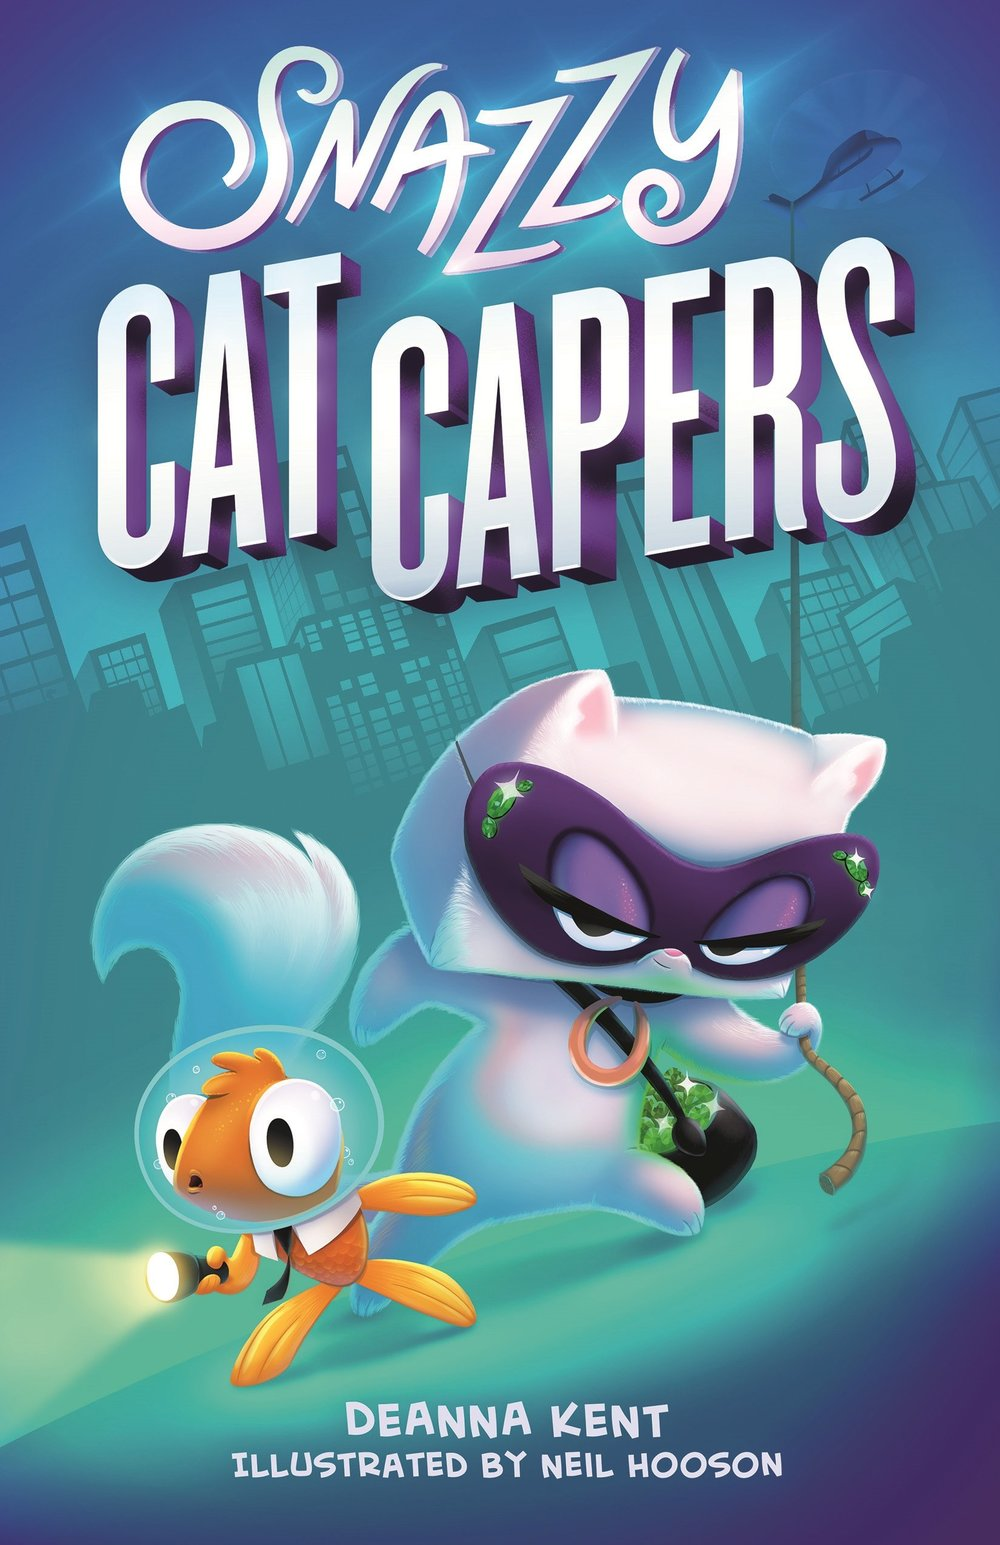 The first book in the Snazzy Cat Capers series comes out September, 2018 to a bookstore near you!